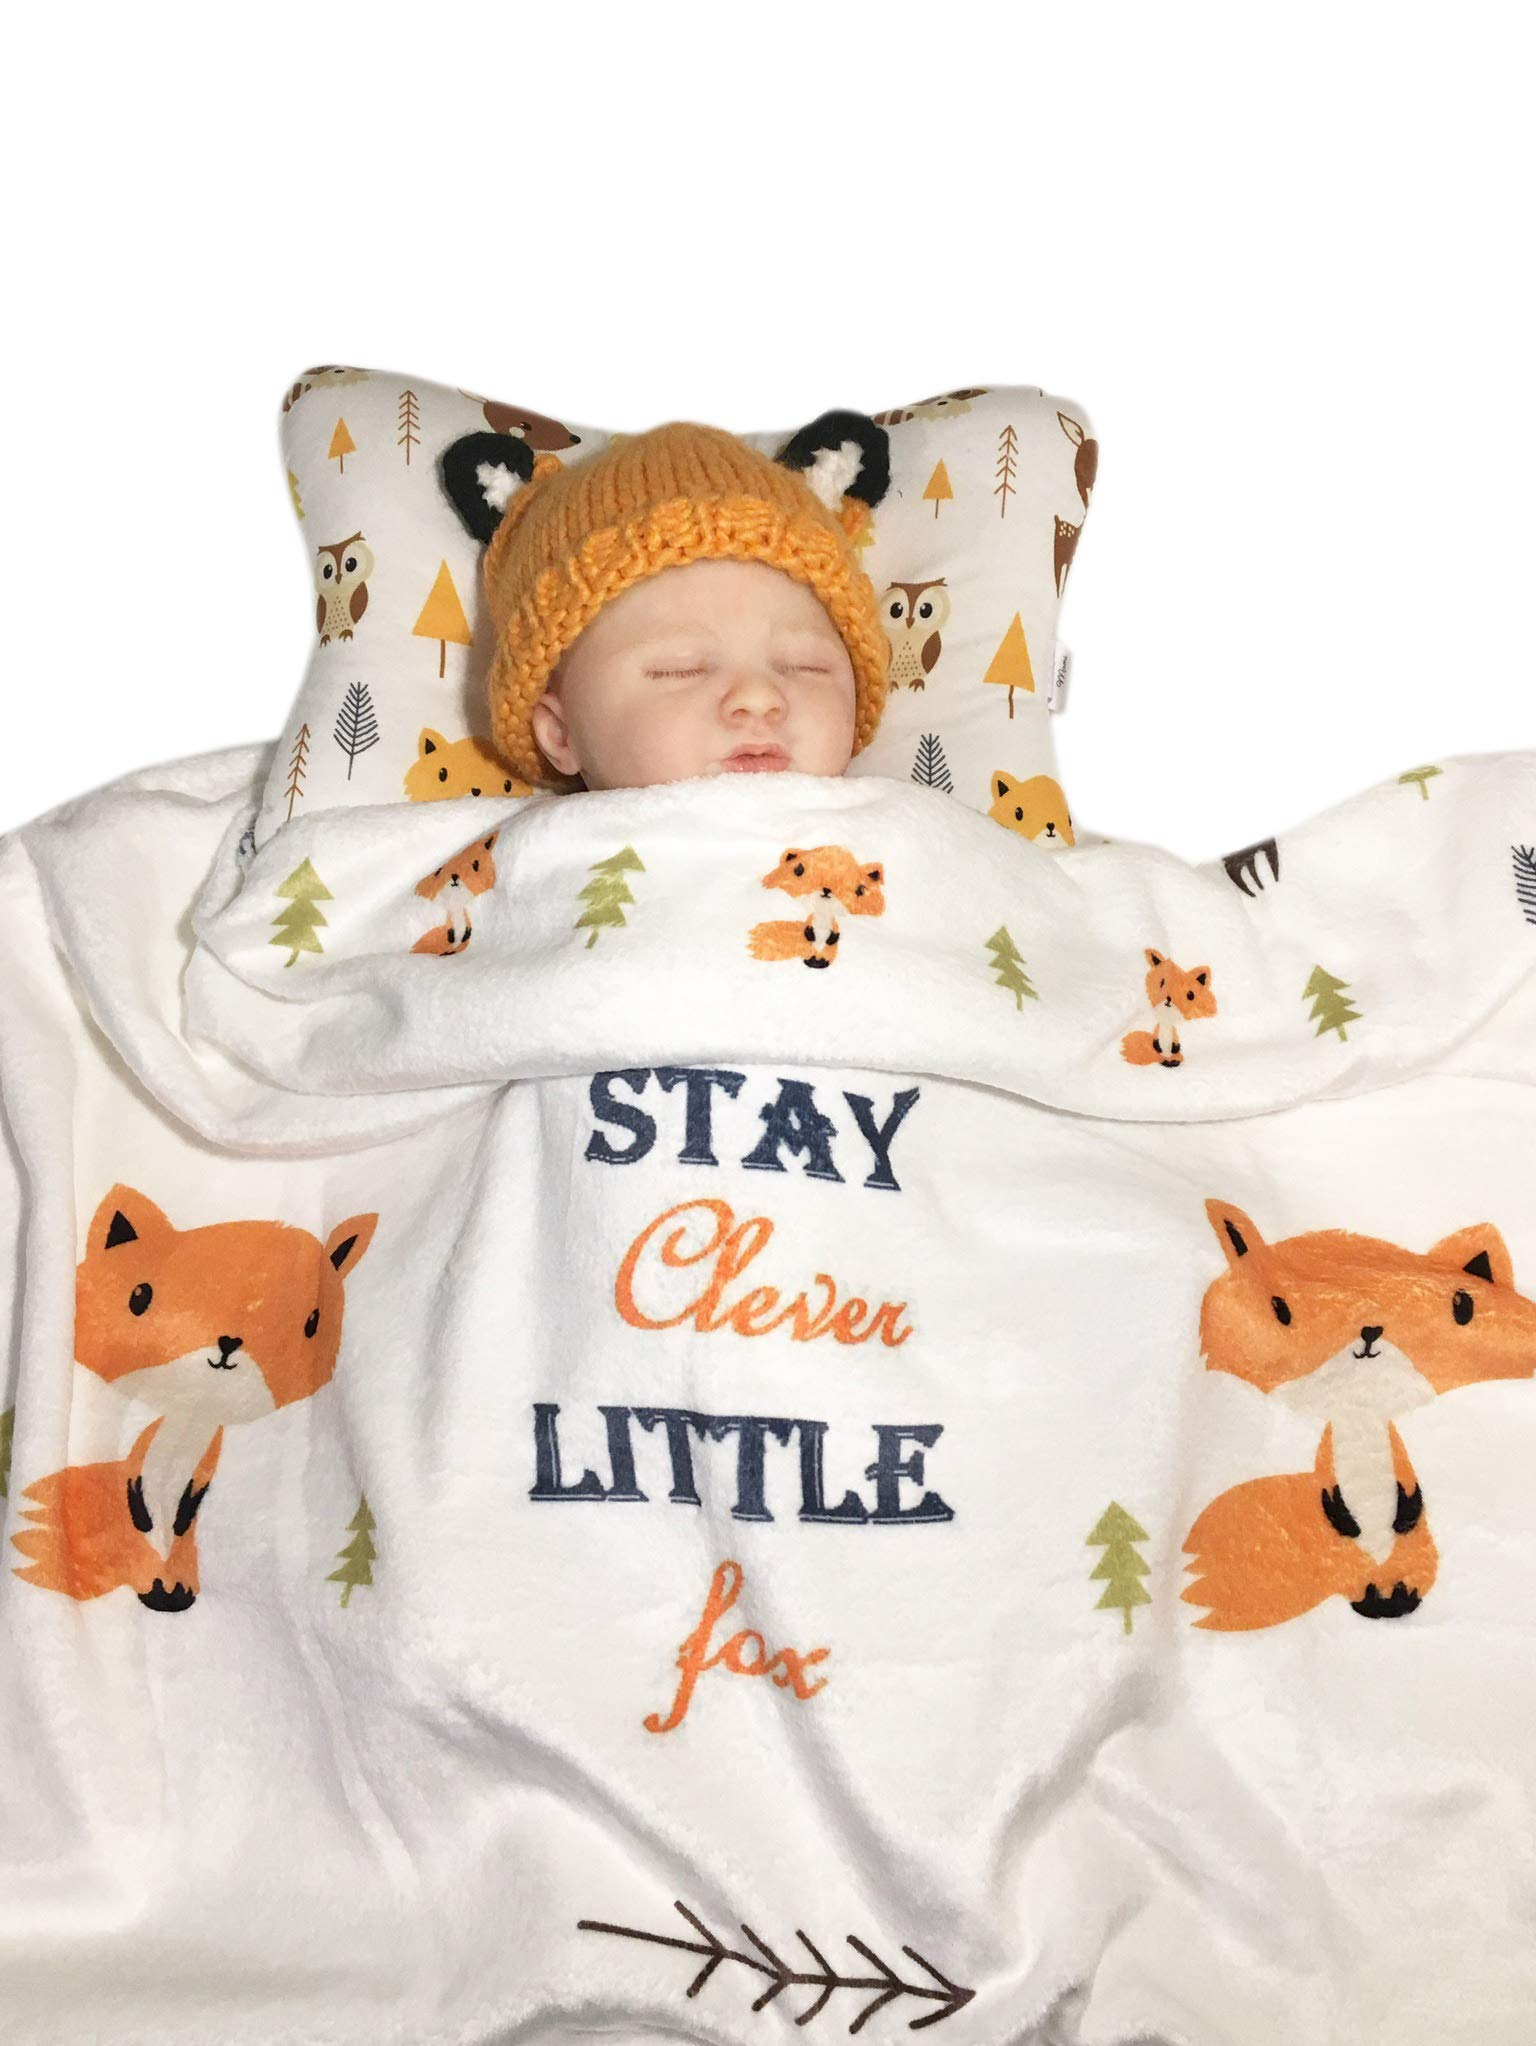 Head Shaping Baby Pillow with Clever Fox Fleece Blanket (2 Pc. Set) Ergonomic Support to Help Prevent Flat Head Syndrome | Newborn Infant Sleeping Comfort by Bling Mami